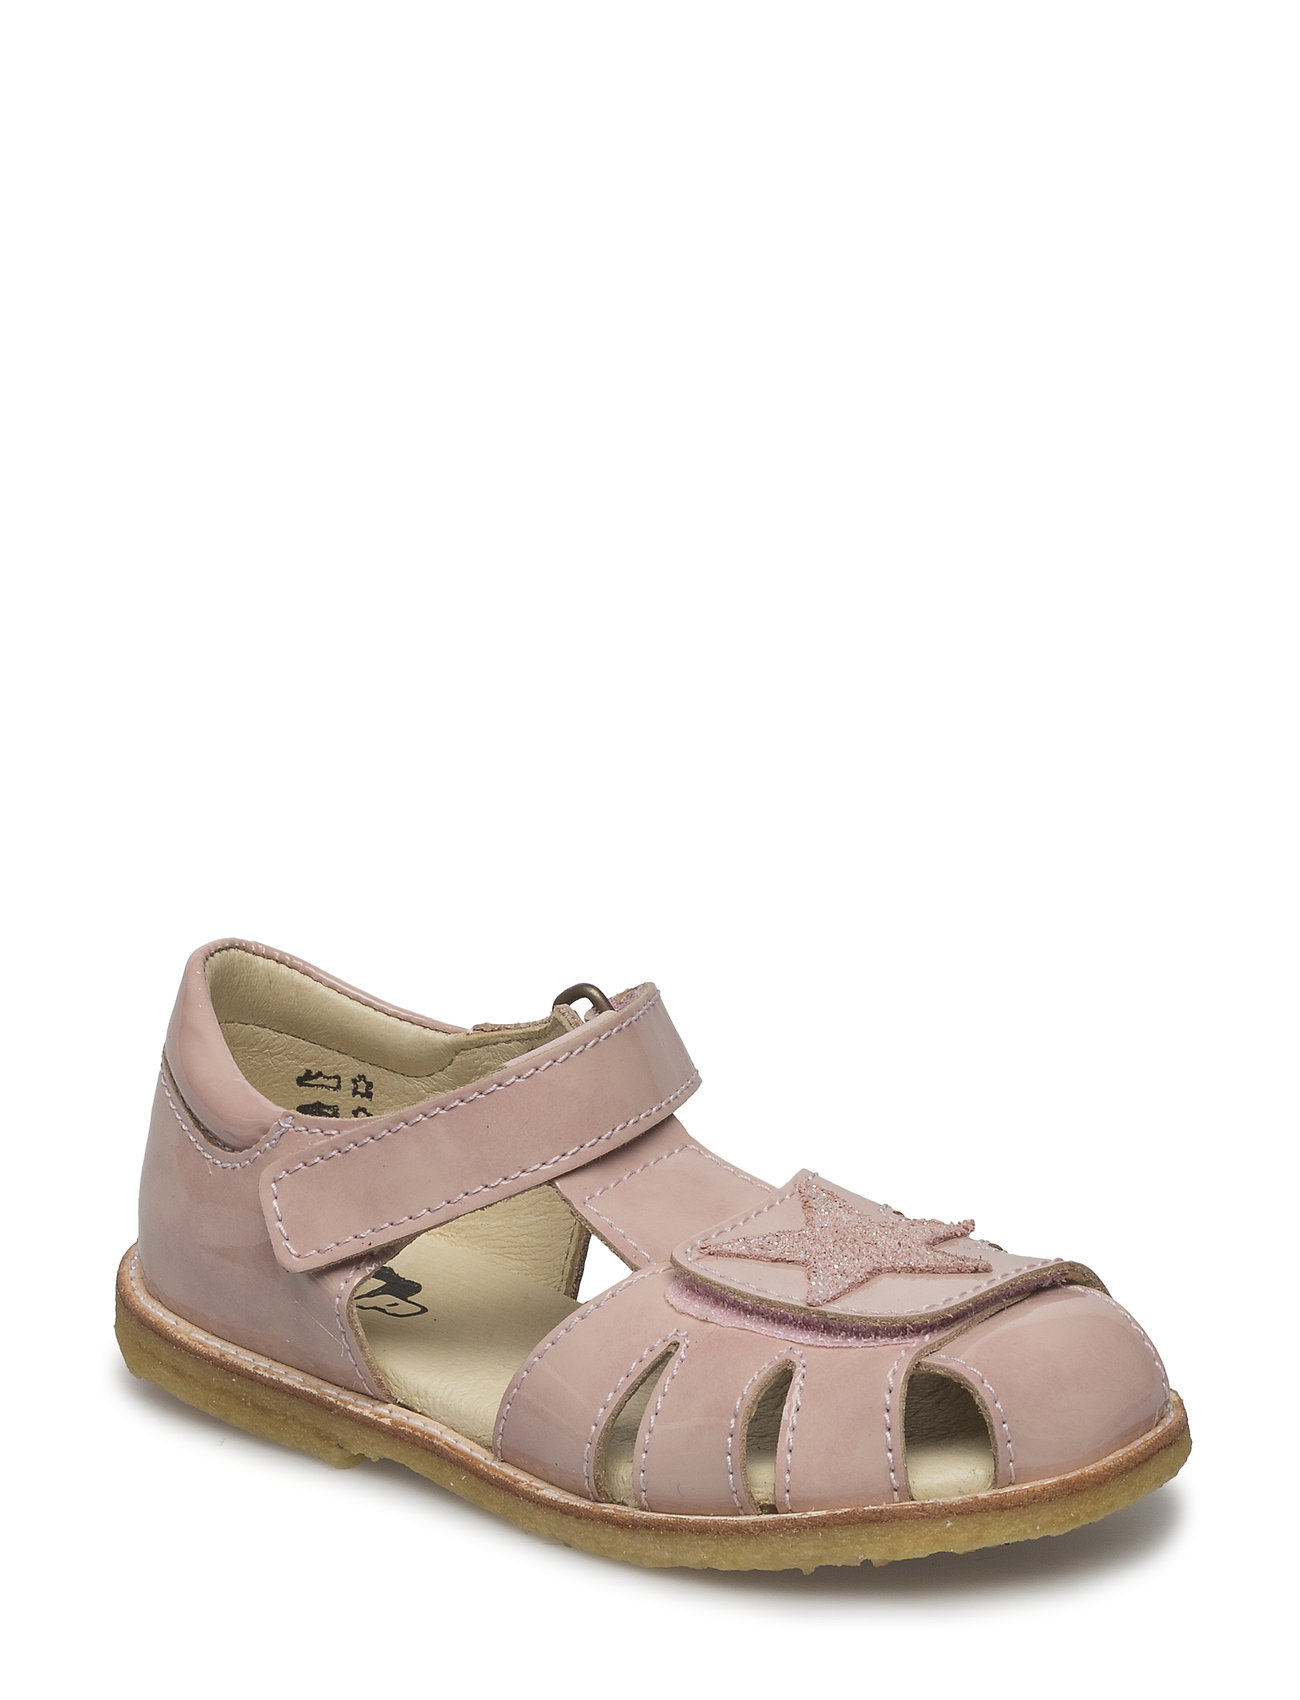 Ecological Closed Sandal, Narrow Fit thumbnail